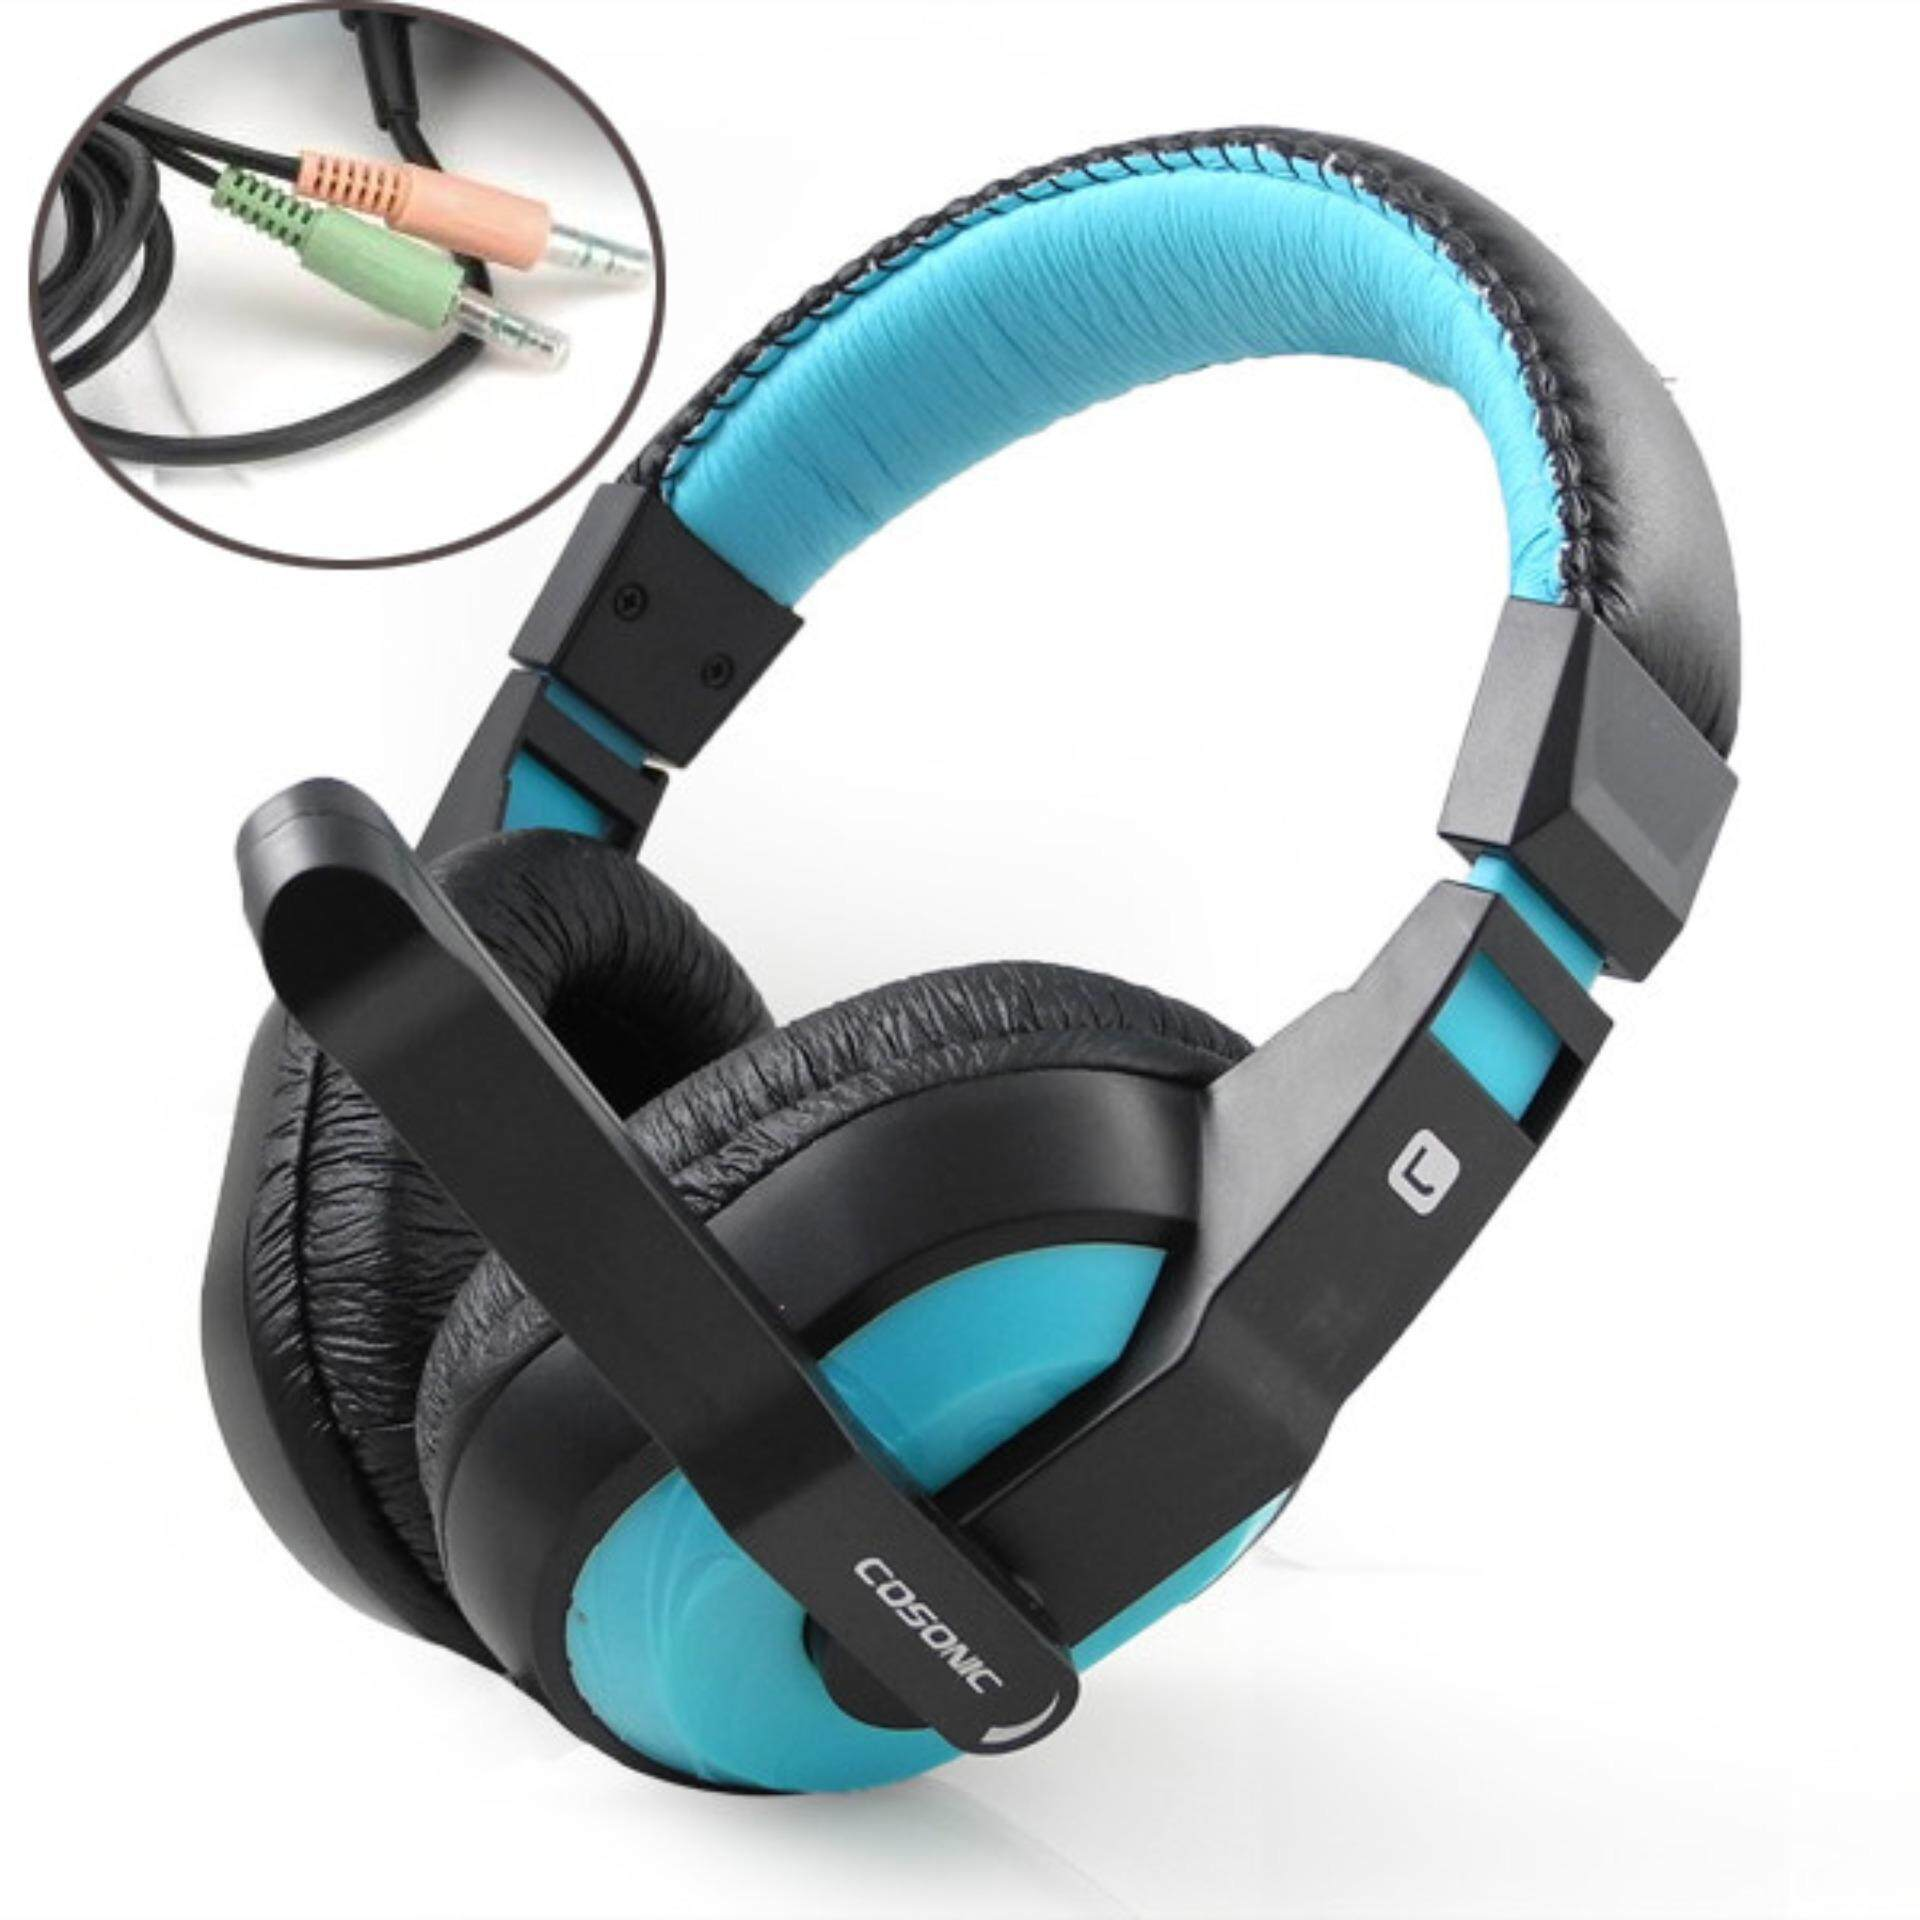 Cosonic CT-770 Stereo Gaming Headphones with Microphone